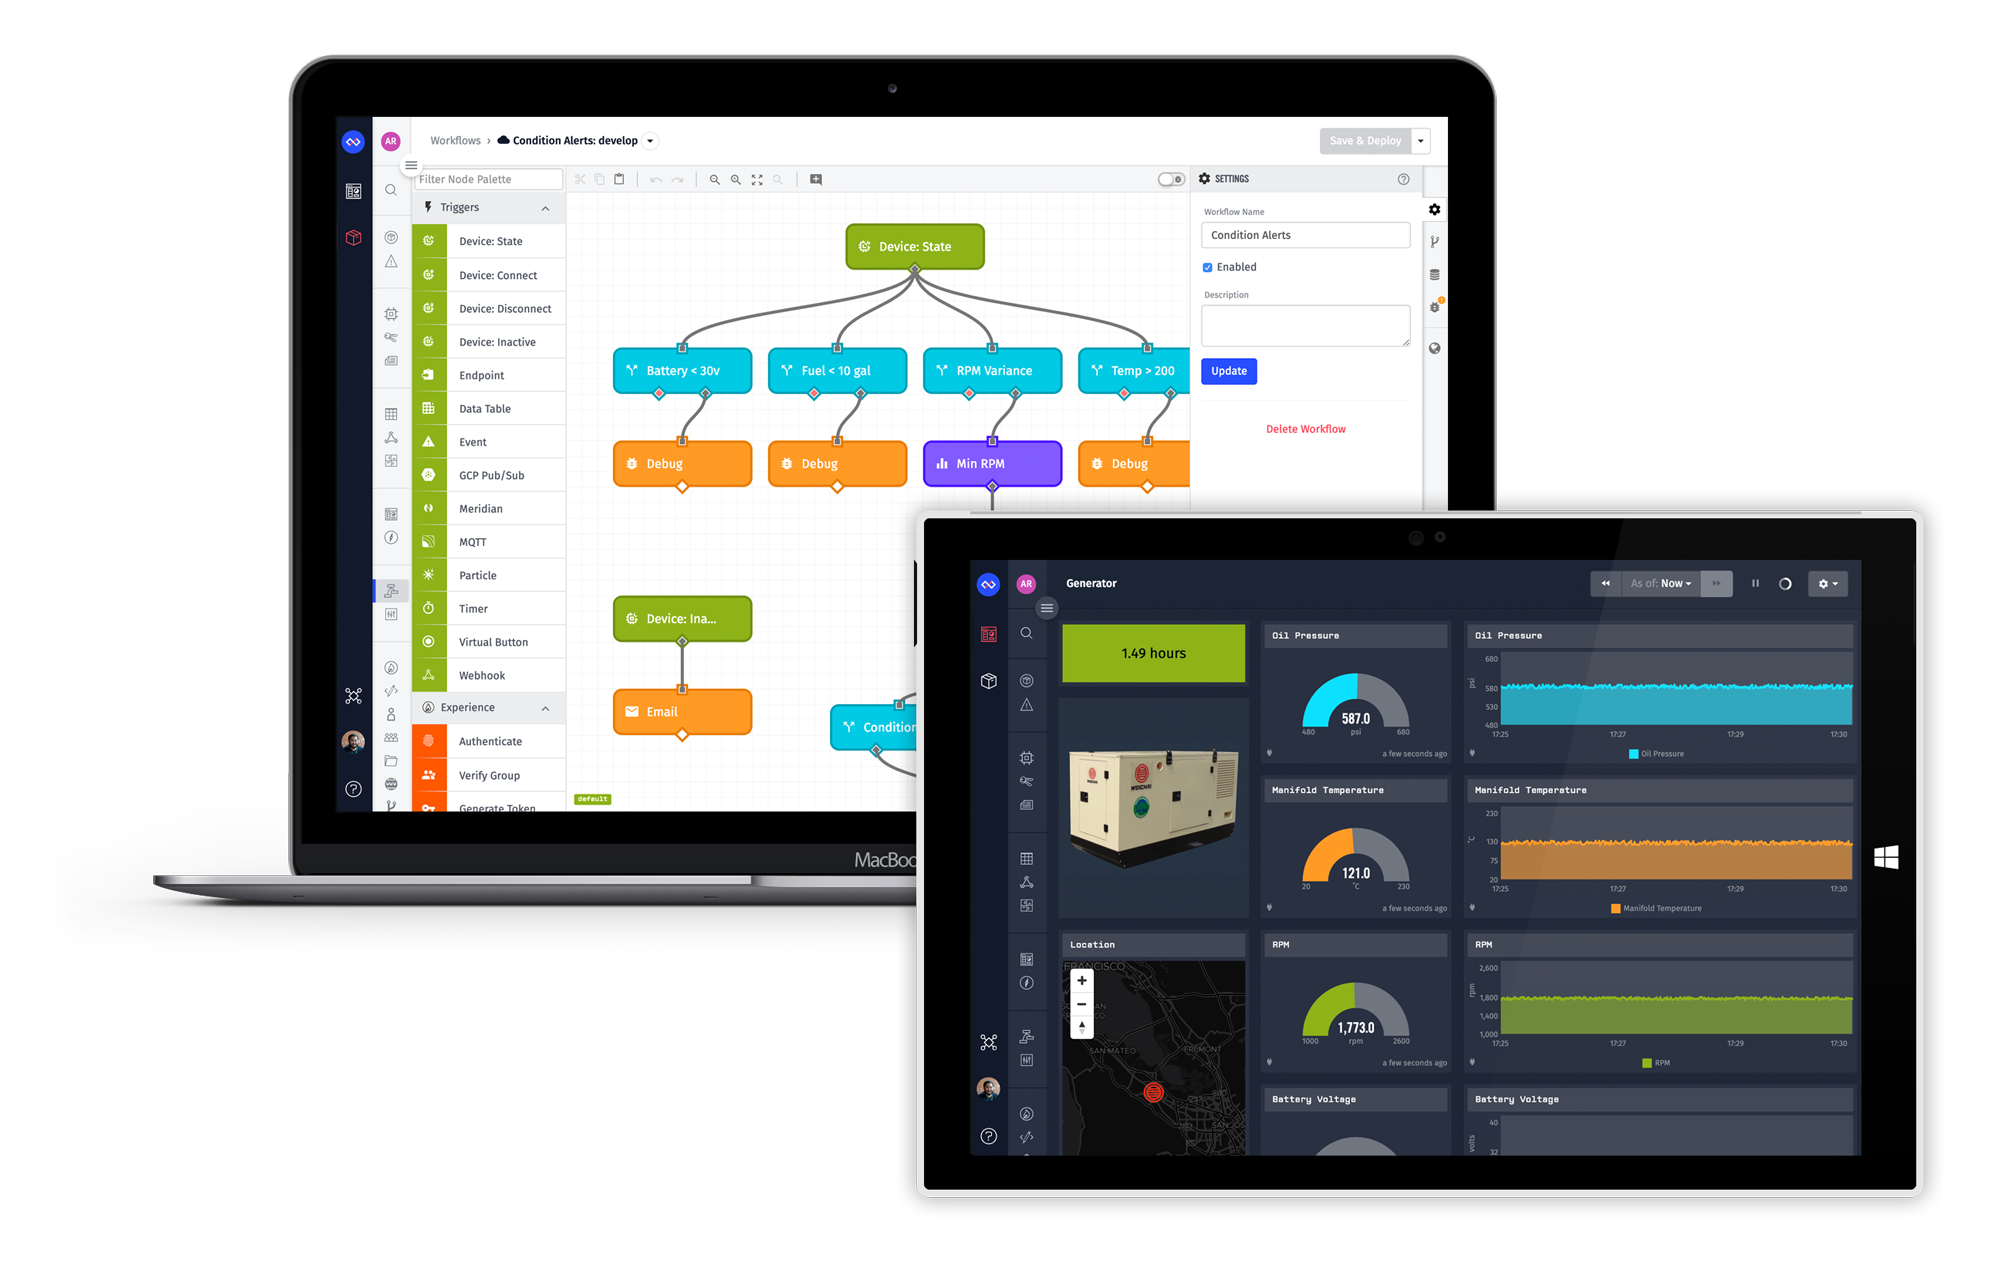 Workflow and Dashboard